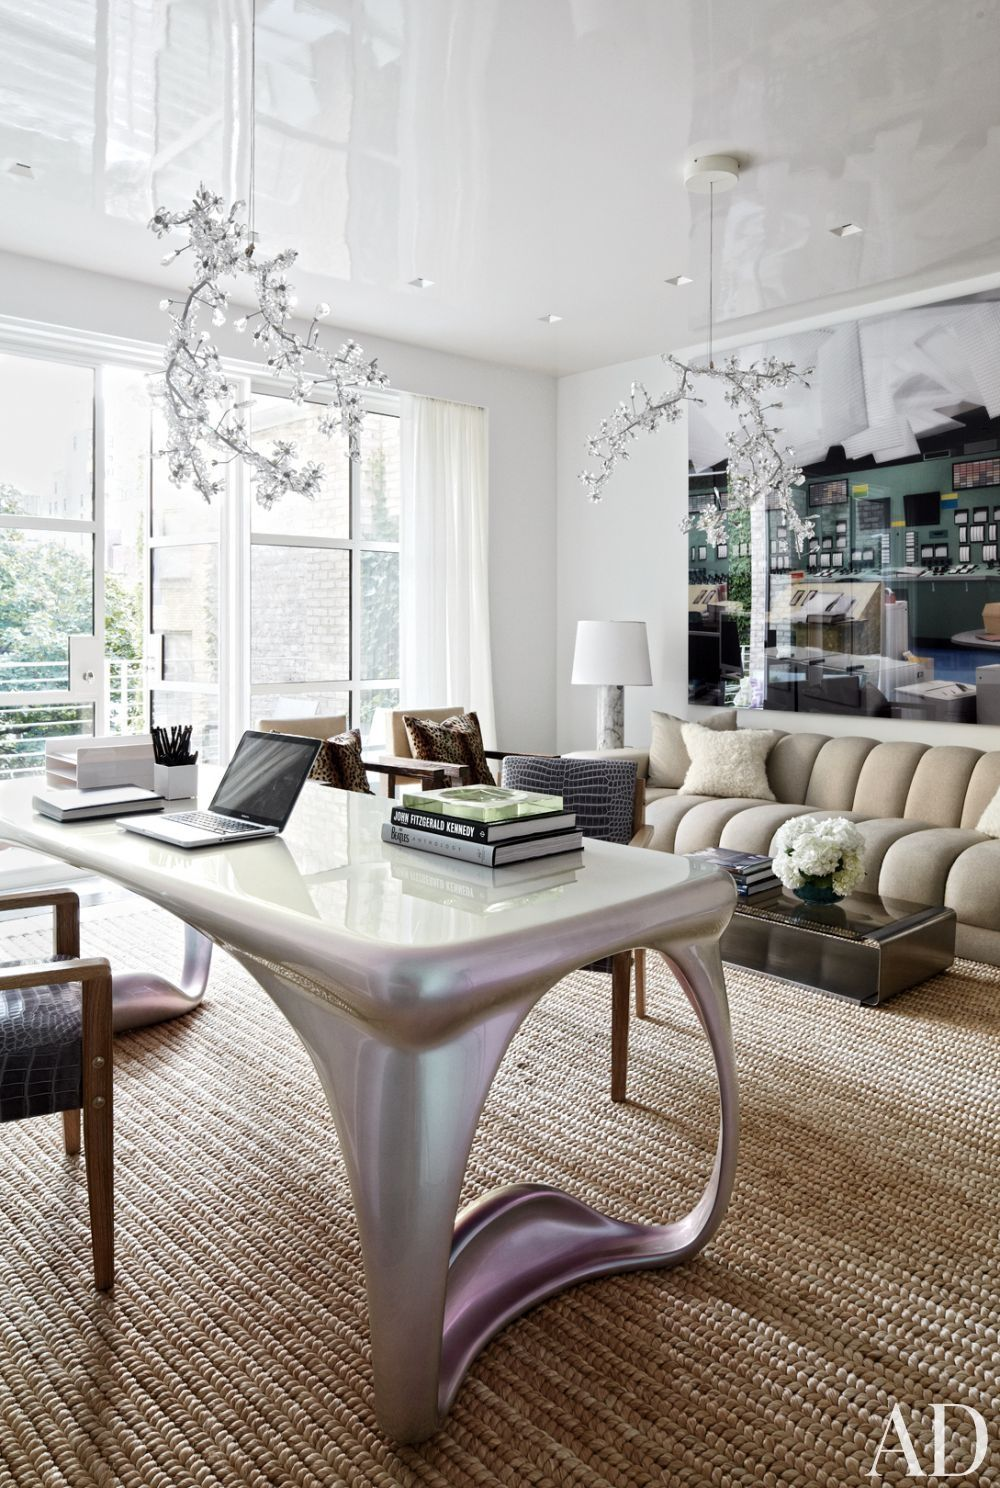 In the study of a New York townhouse, Studio Tord Boontje for Swarovski chandeliers overlook a Vladimir Kagan sofa clad in a Clarence House#interiordesign